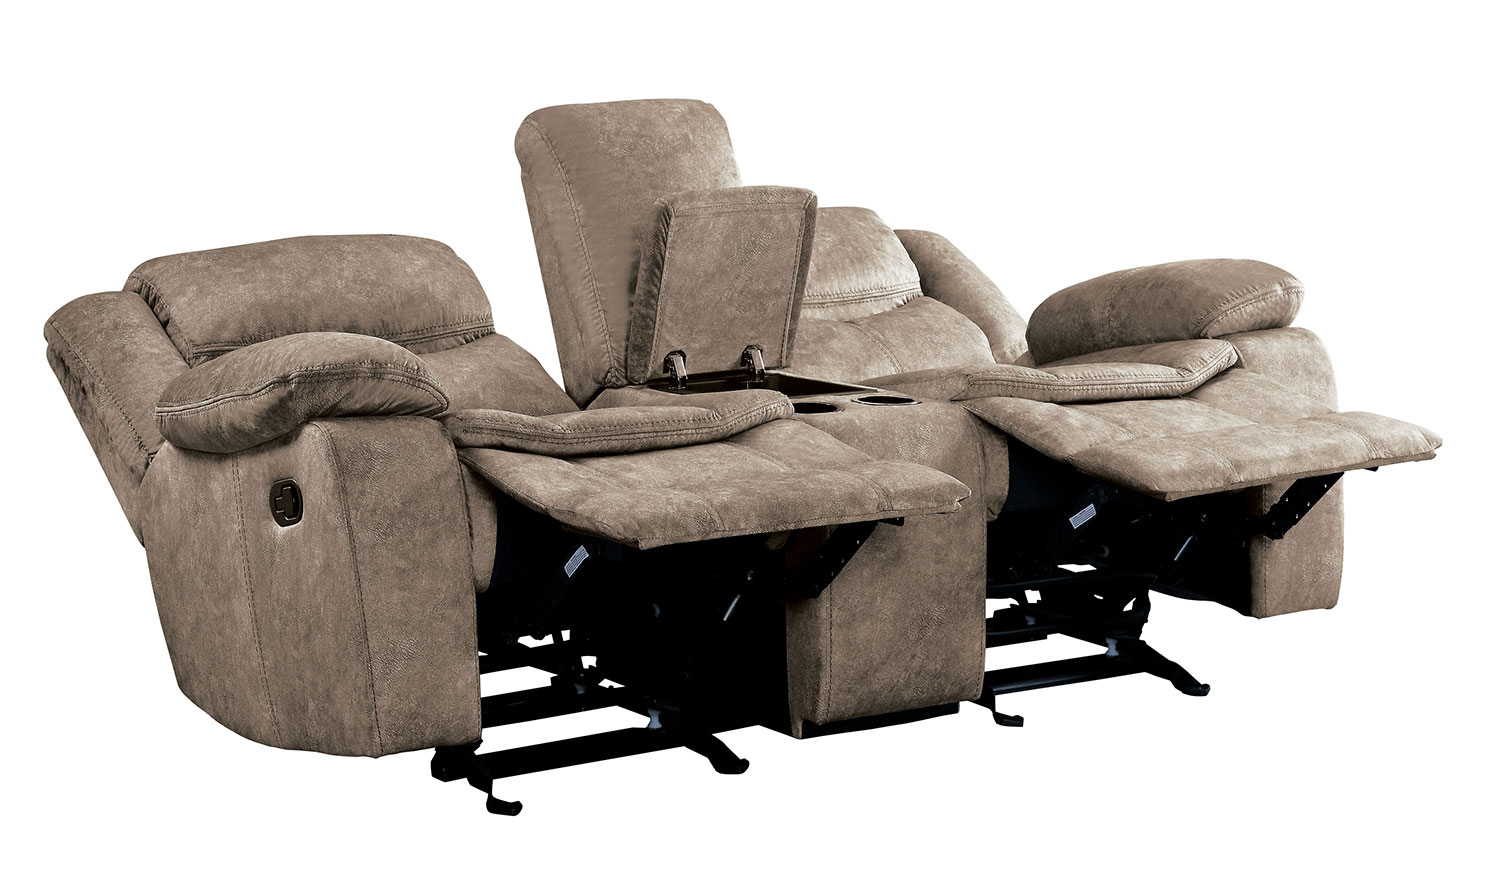 Homelegance Bastrop Double Glider Reclining Love Seat with Center Console - Brown